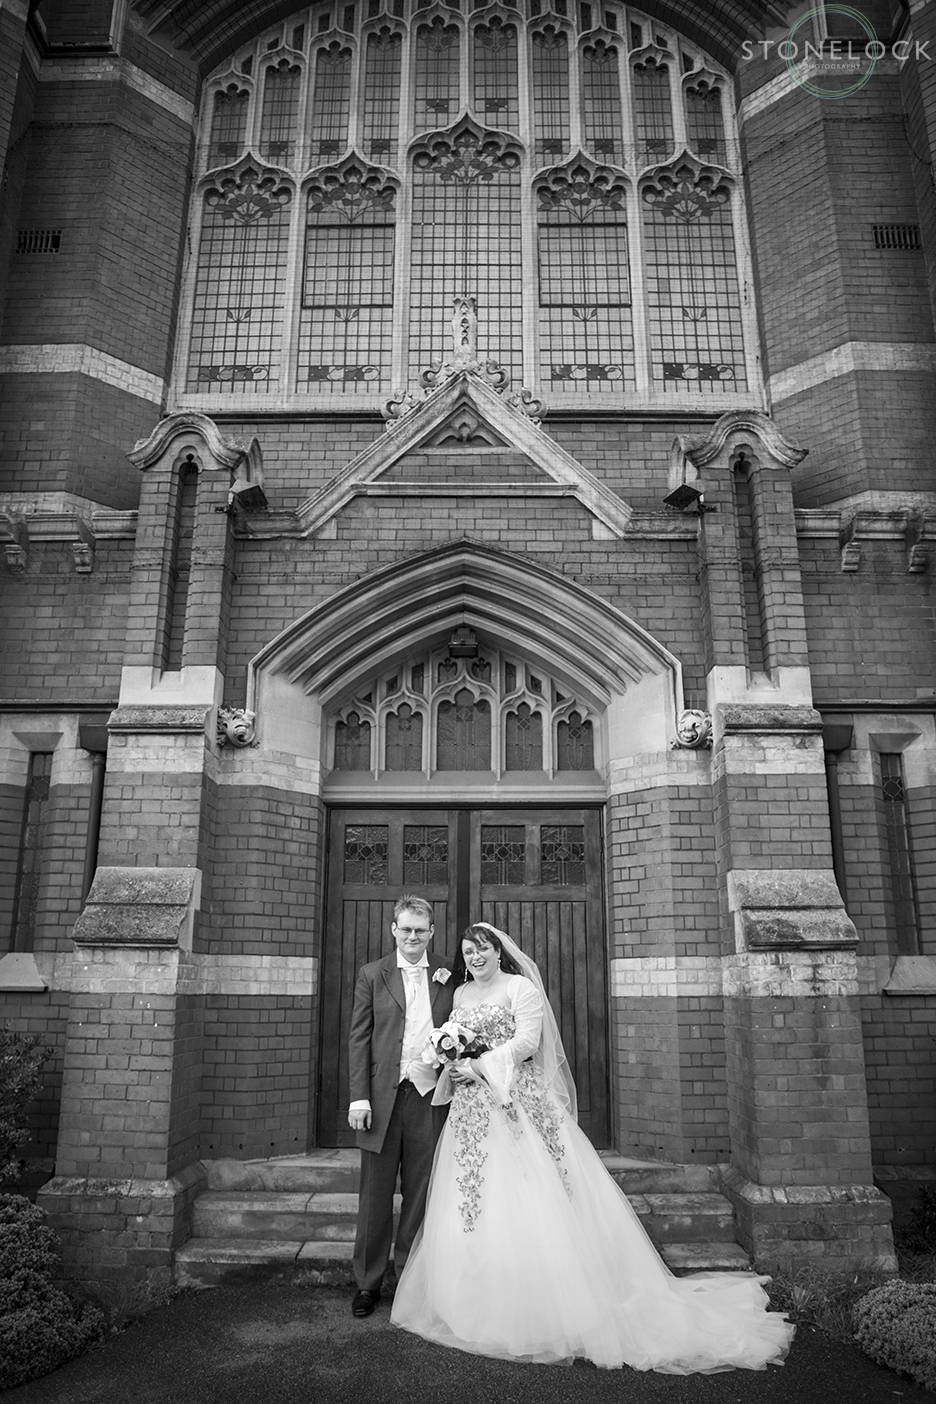 The bride and groom stand outside the church after their